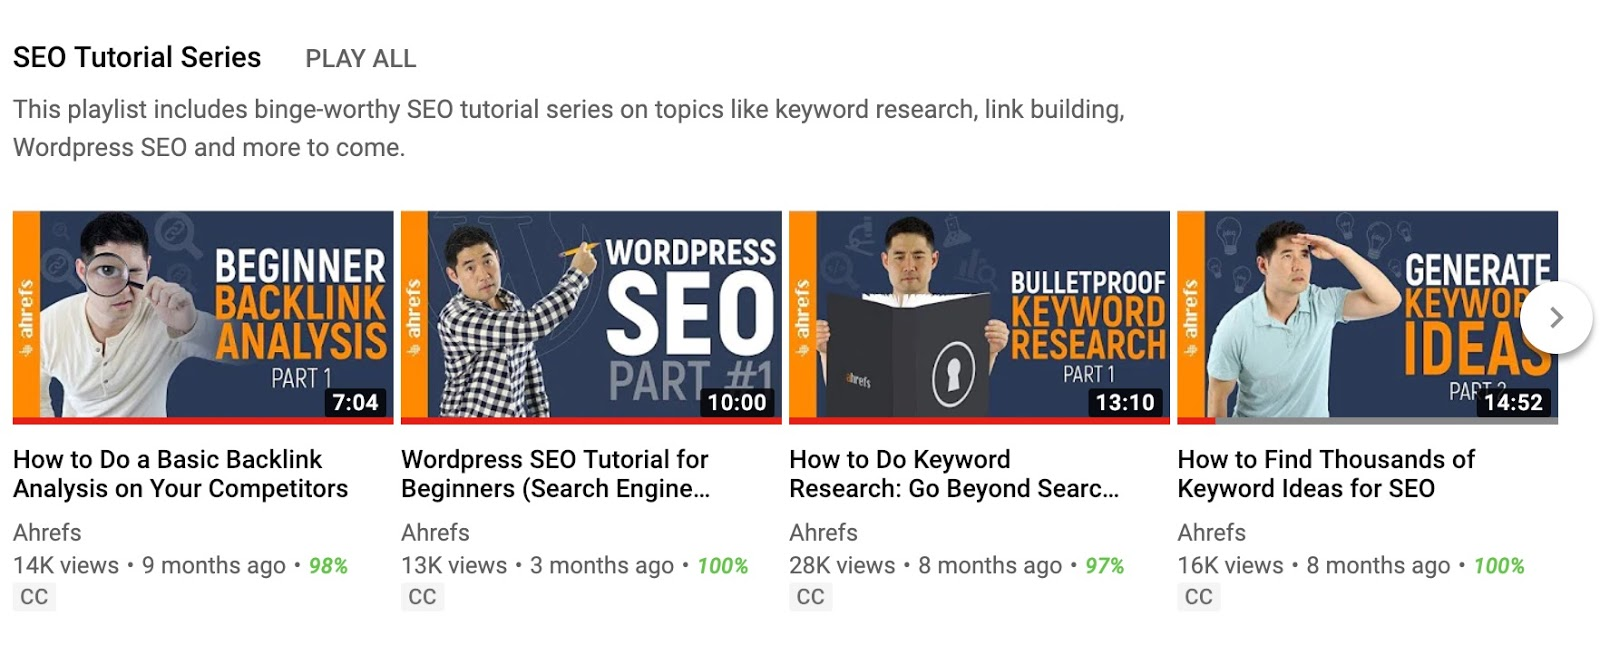 ahrefs channel page